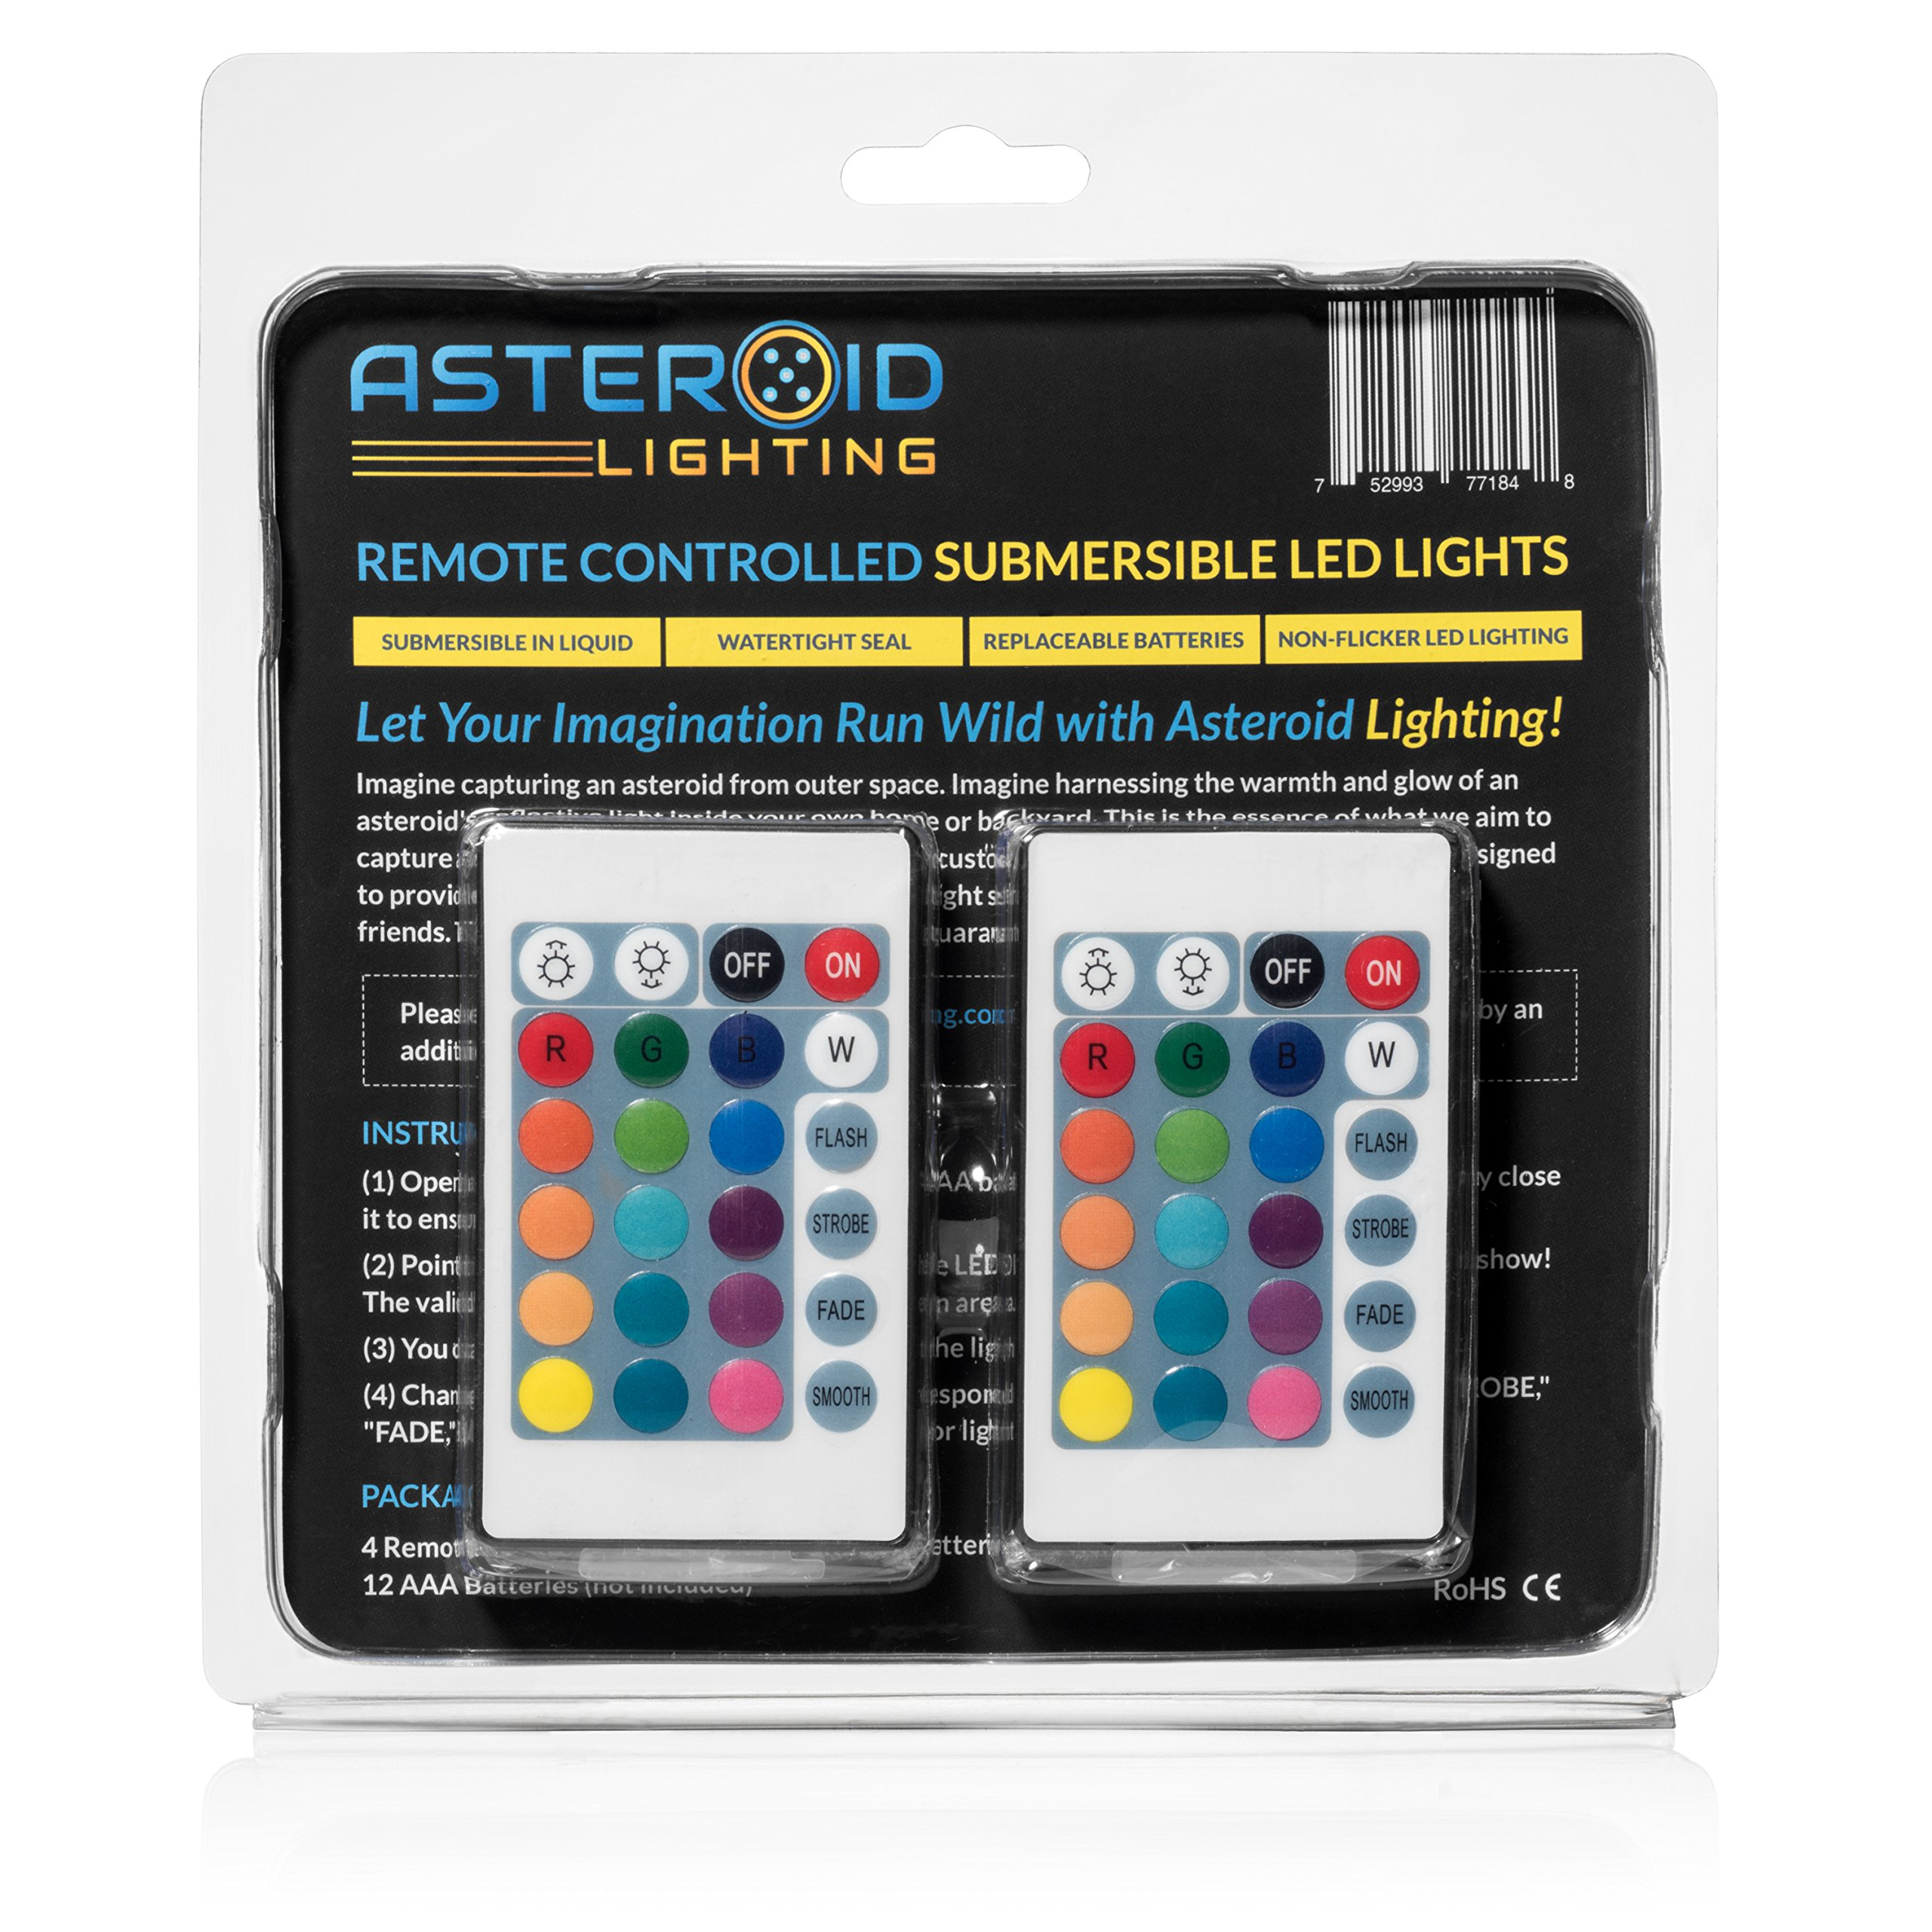 Asteroid Lighting Submersible LED Lights with Remote [4 Pack] ~ Fountain Lights, Pond Lights, Underwater Submersible LED Lights ~ Non-Flicker Multicolor LED for a Smooth Out-of-This-World Light Show!